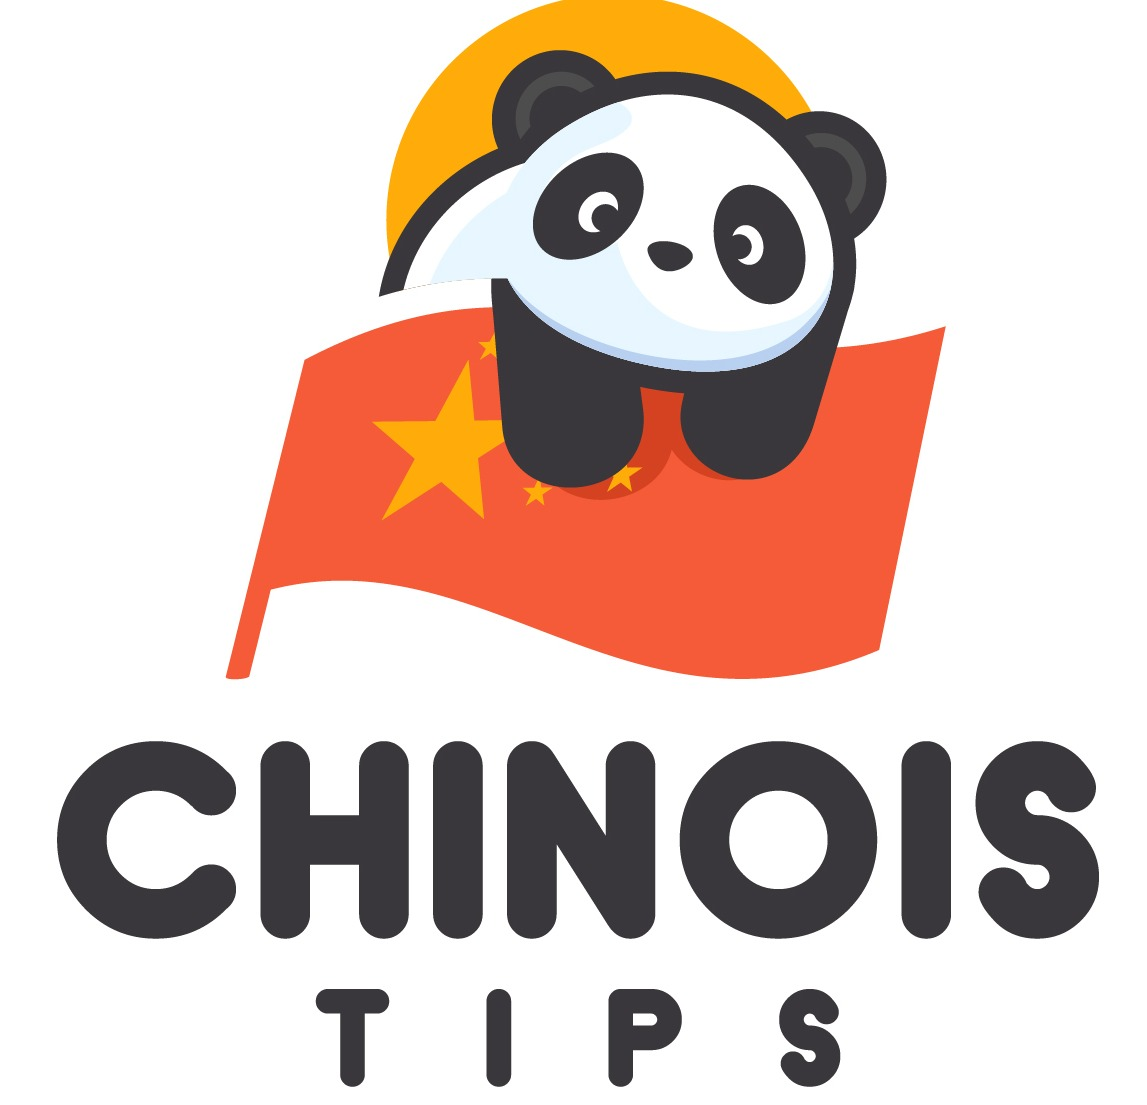 Chinois Tips